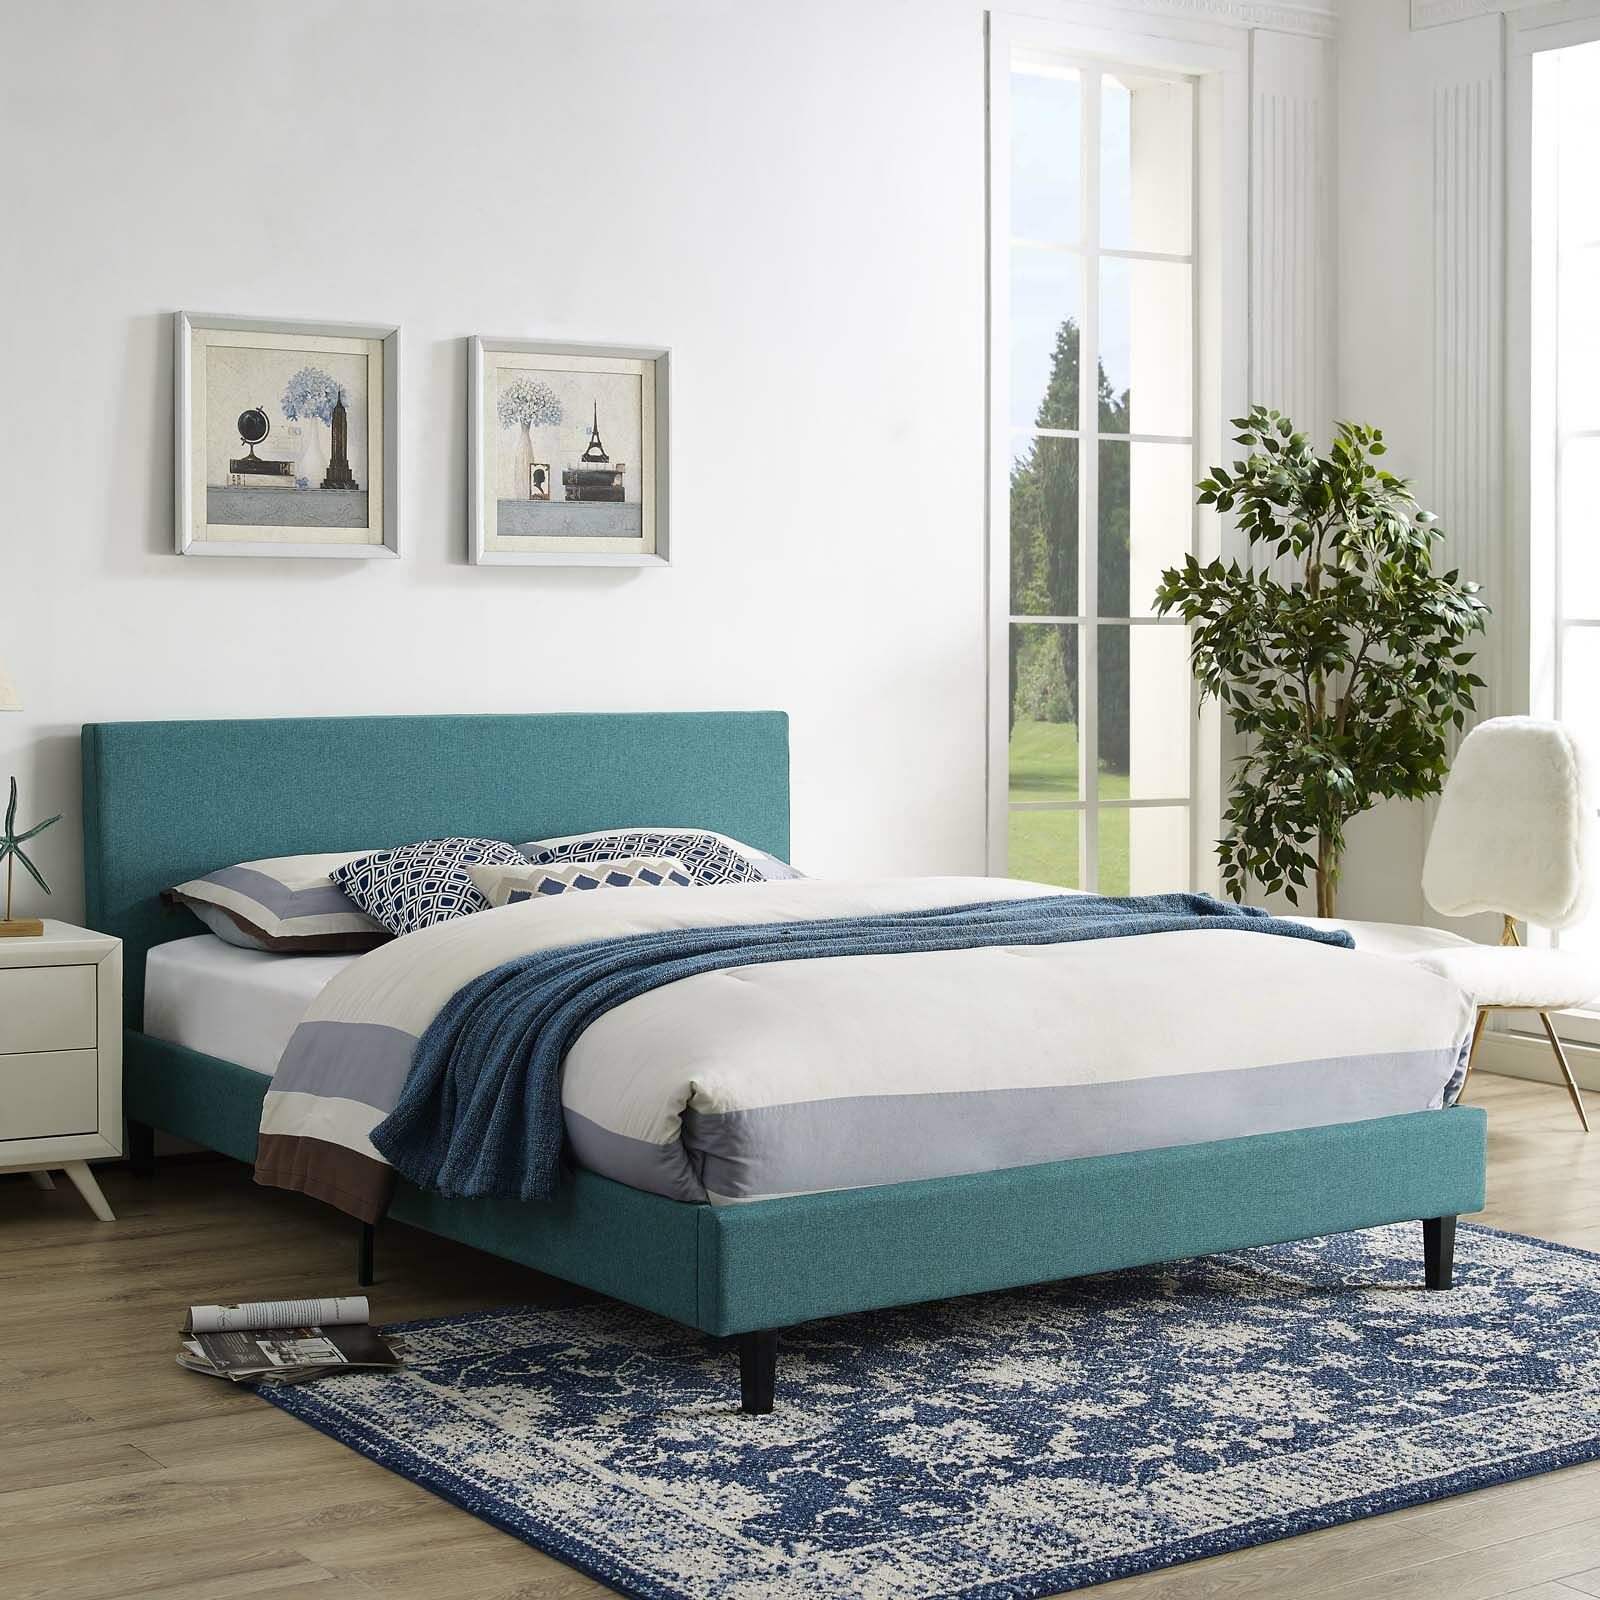 Tafolla Bed Frame Size: Queen, Color: Teal